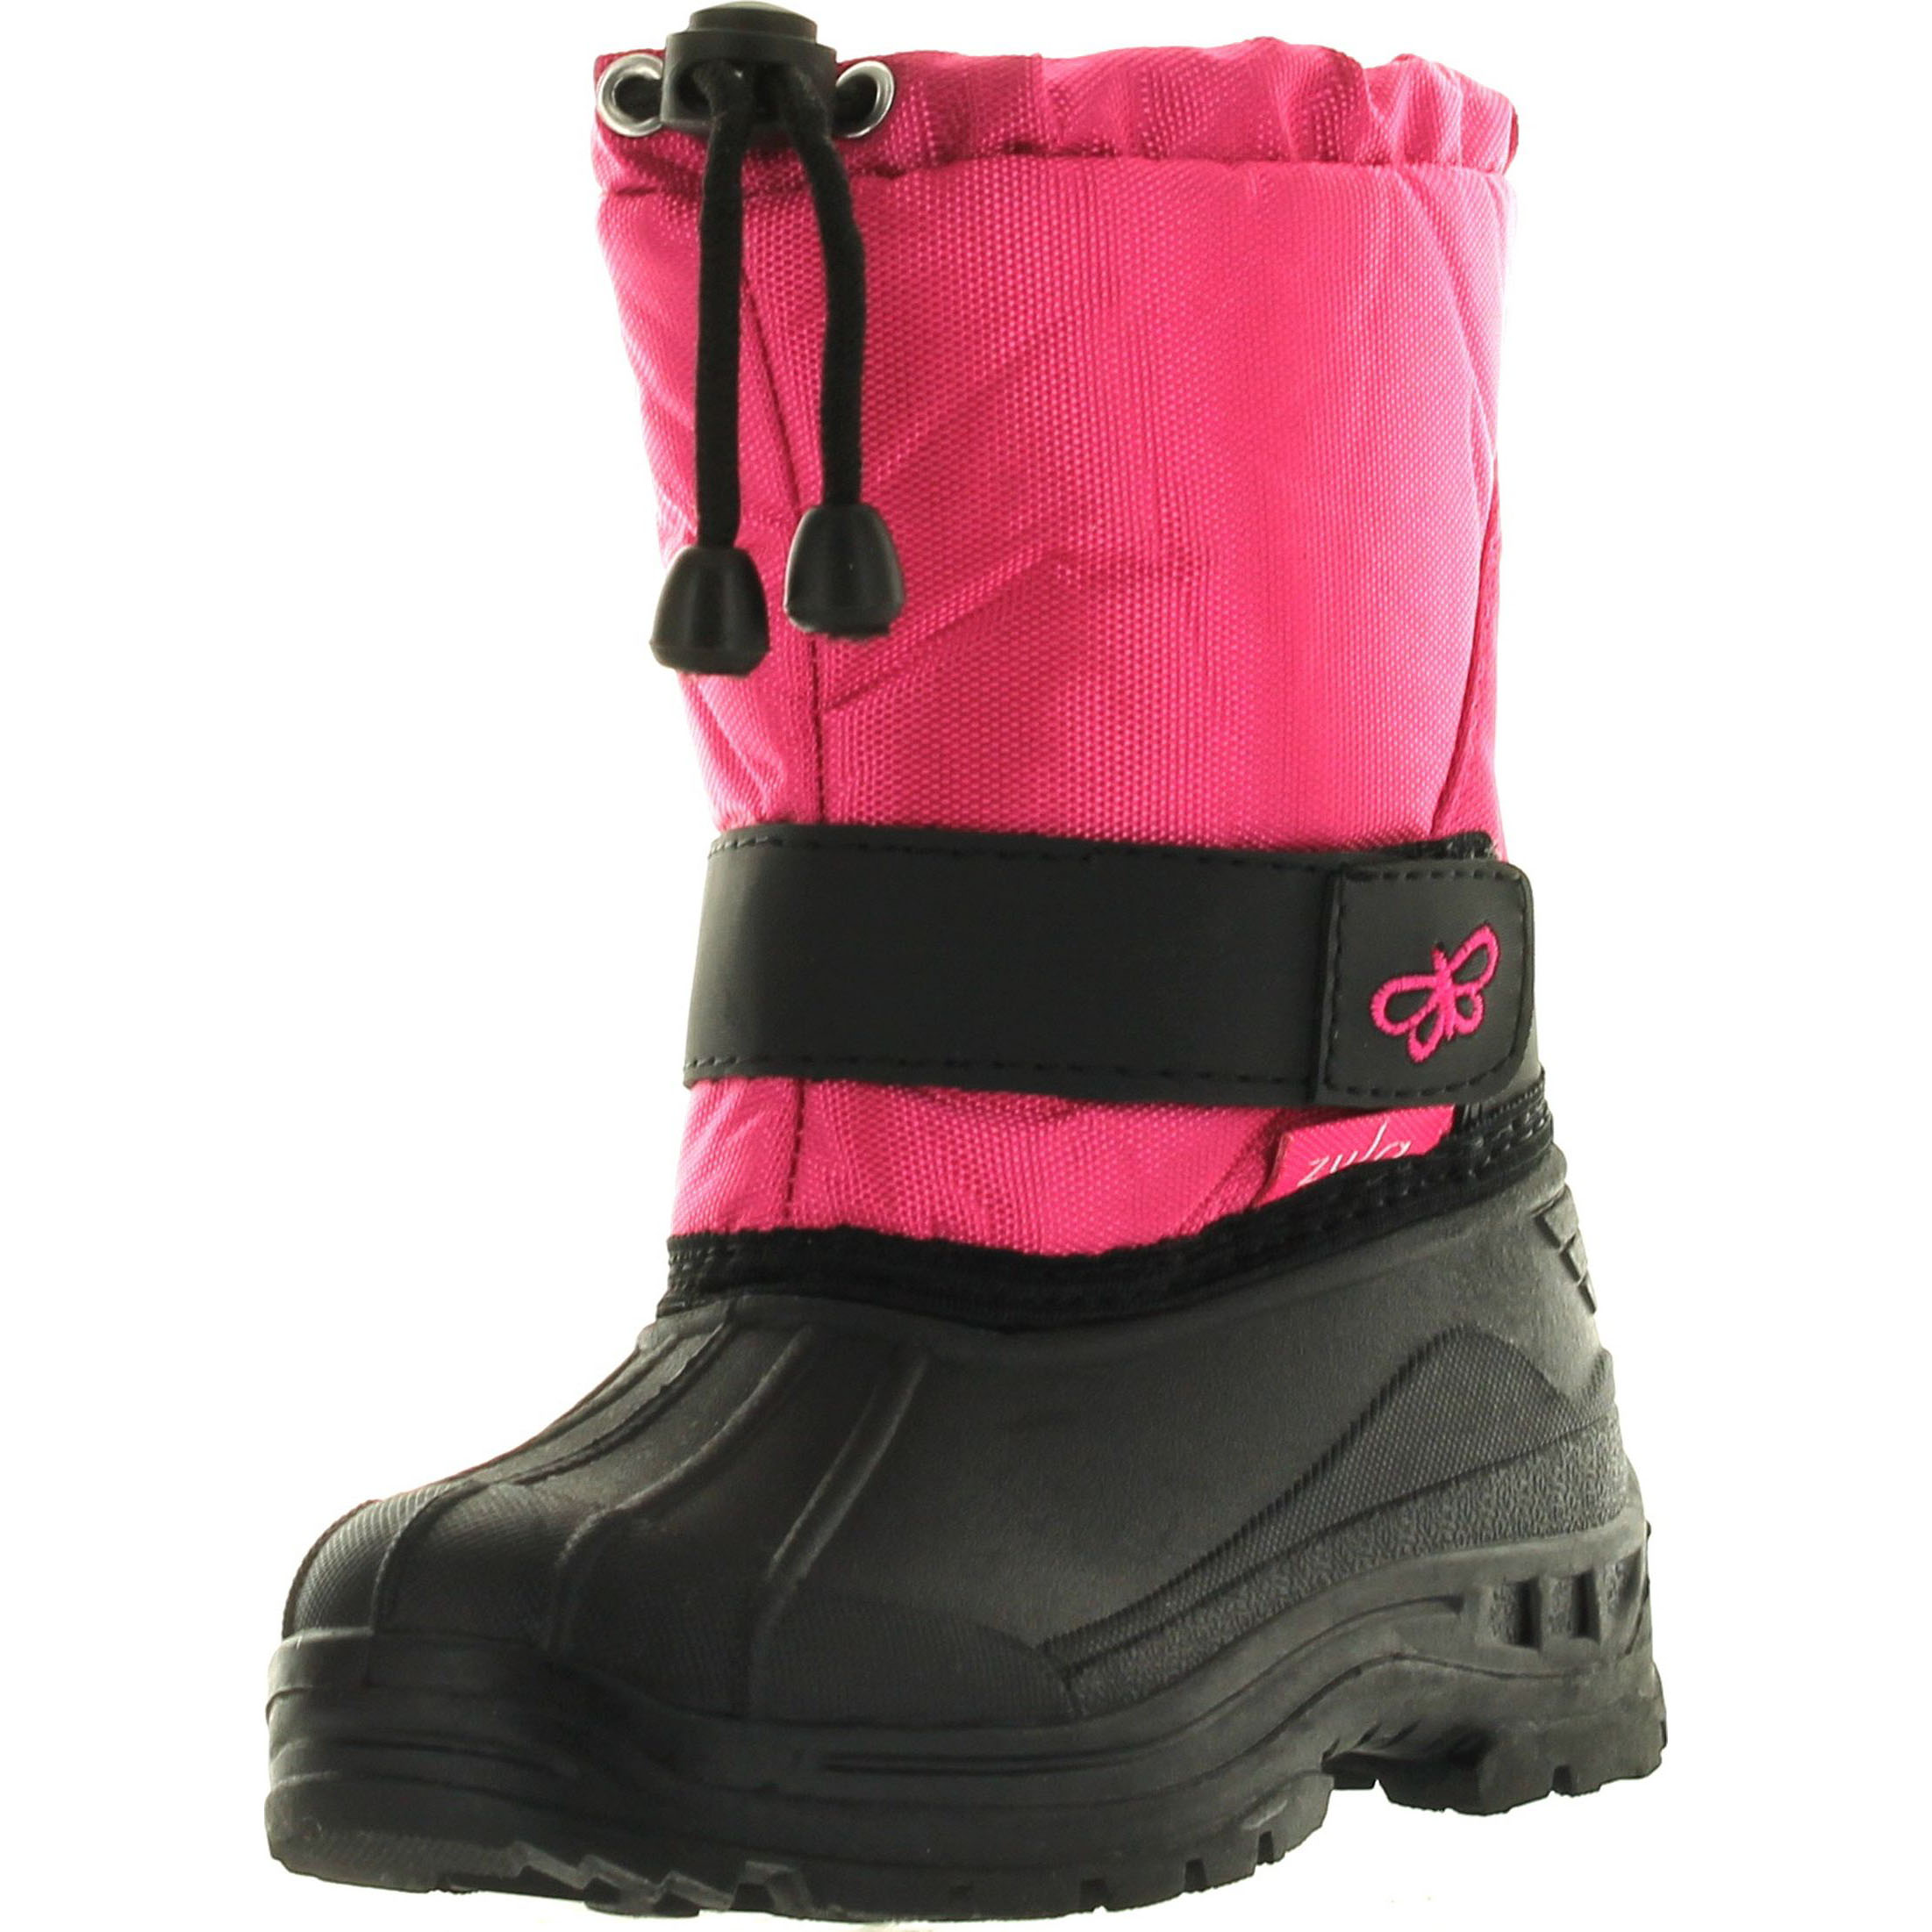 Static Kids BHD-05 Super Cute Butterfly Waterproof Cold Weather Kids Snow Boots by Static Footwear